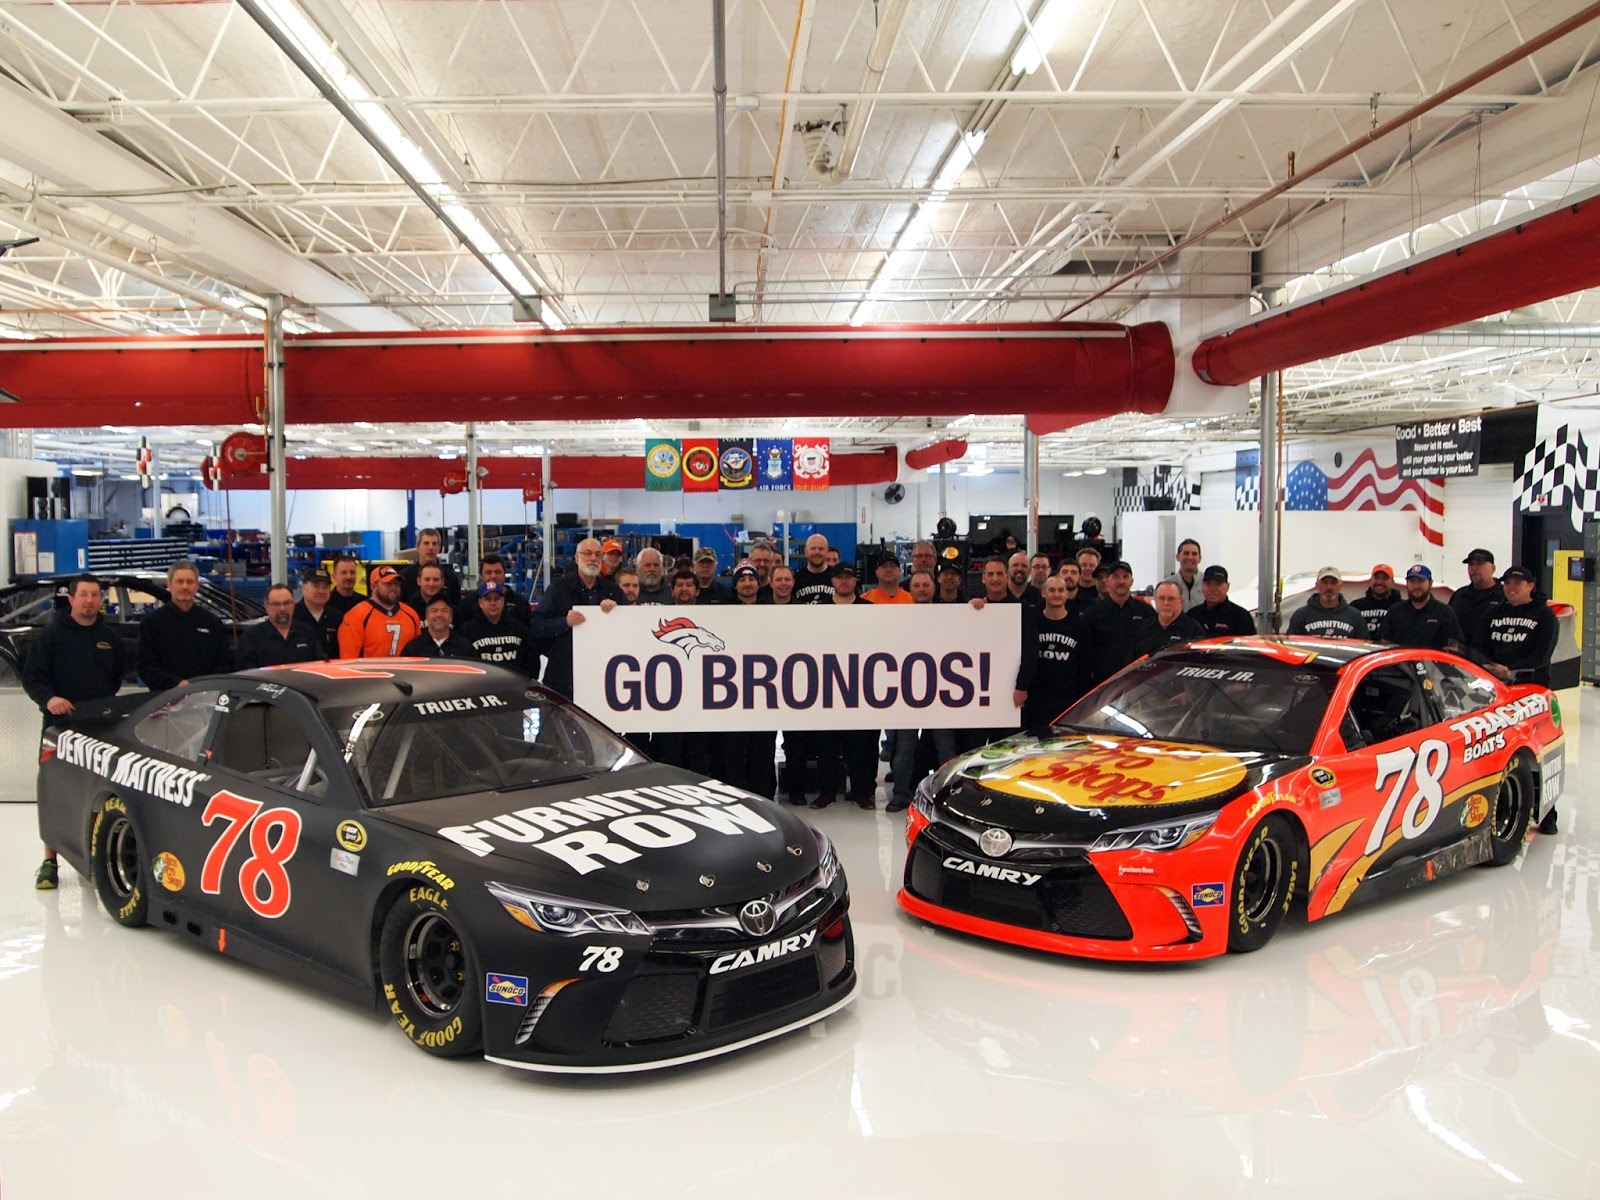 The Godfather's Blog: Furniture Row Bucks NASCAR Trend; Roots For Broncos In Super Bowl 50